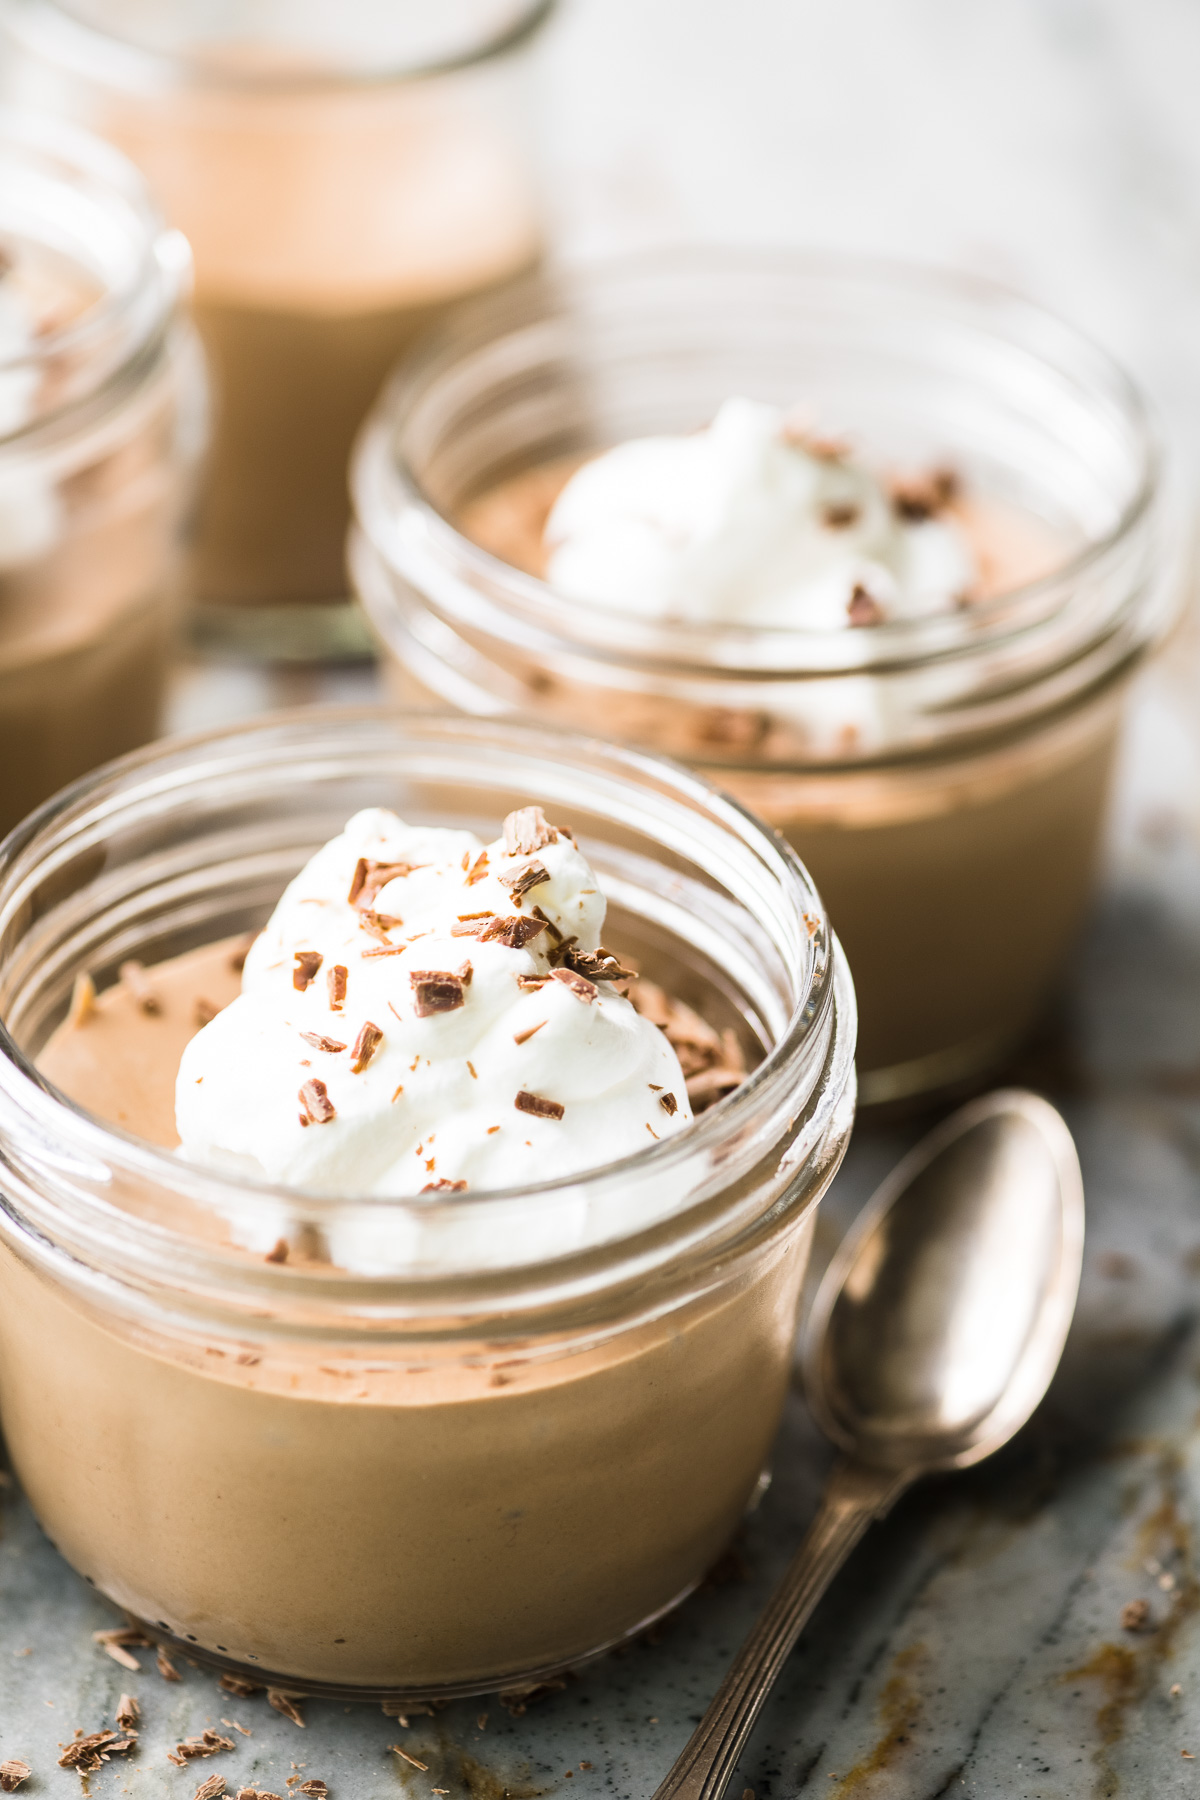 jars of milk chocolate mousse with whipped cream and chocolate shavings